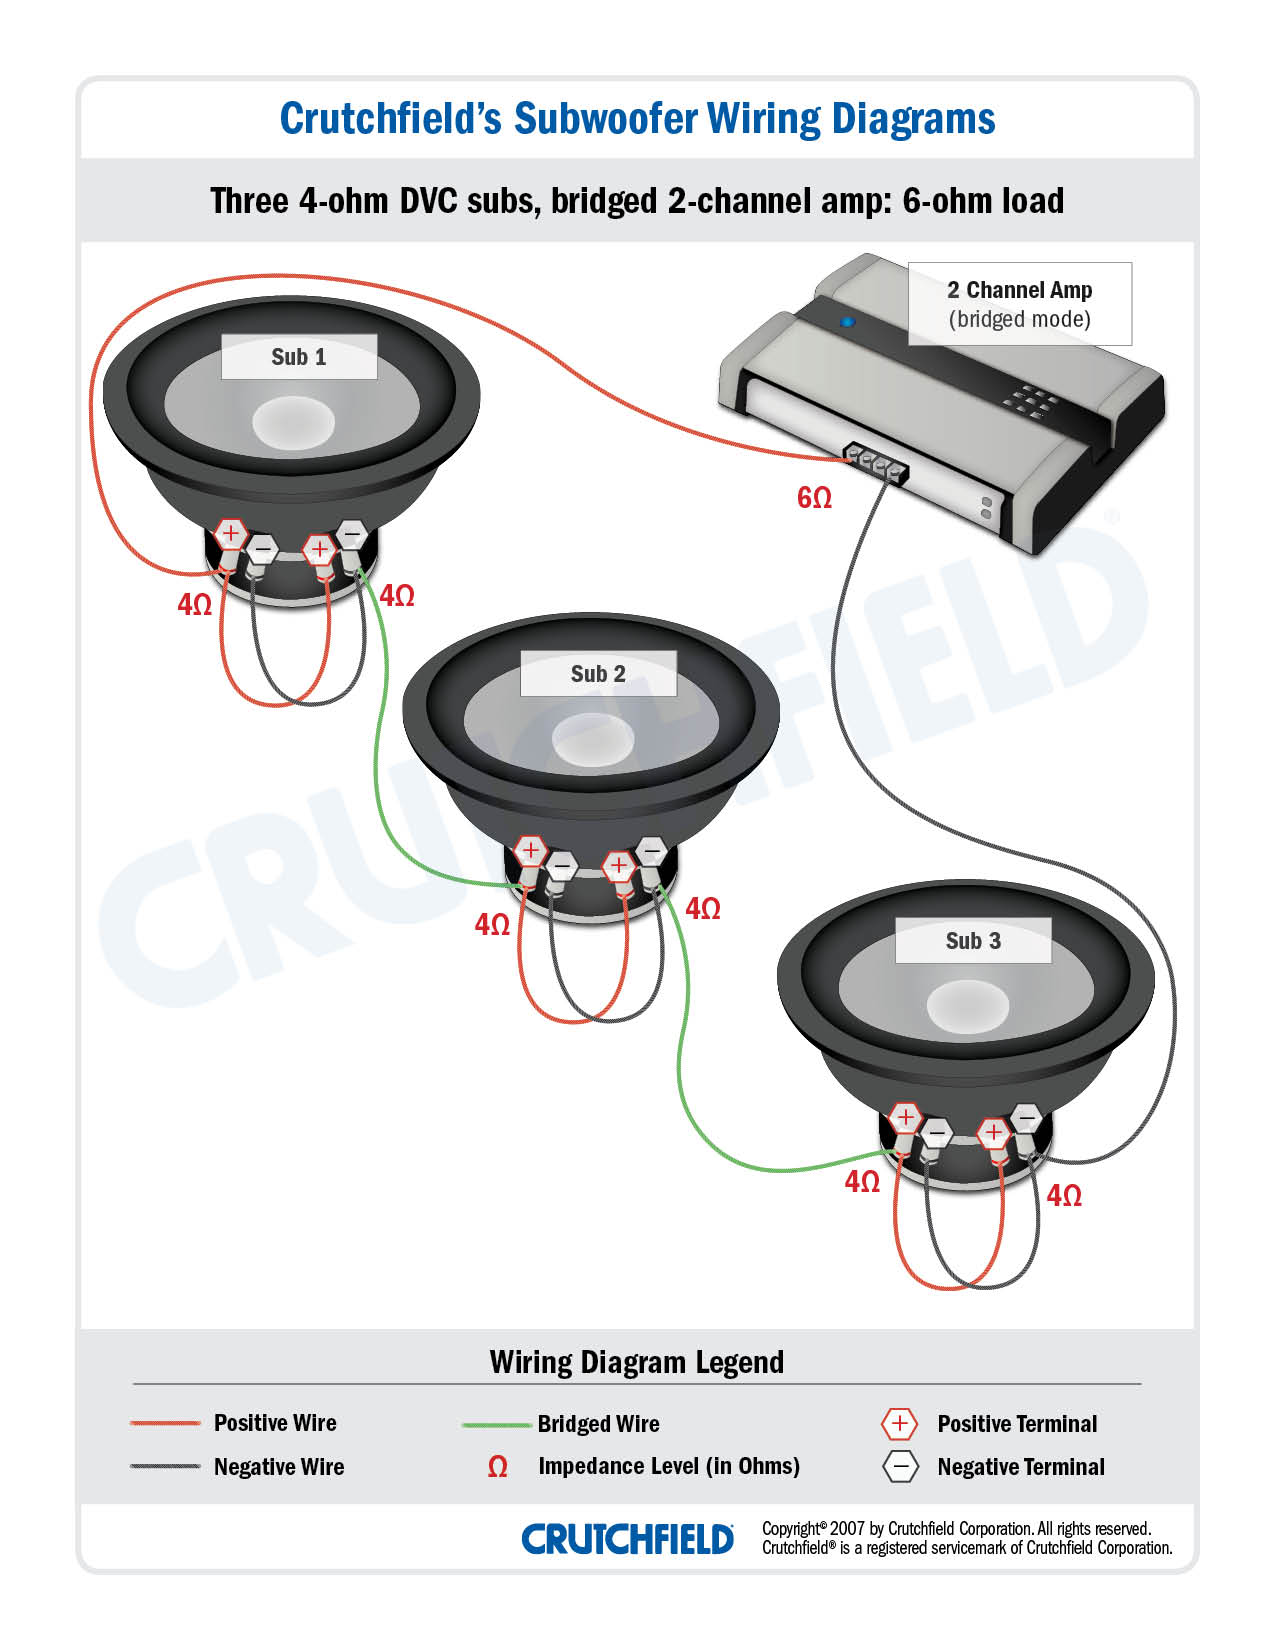 Wiring Diagram For Radio 1998 Toyota Rav 4 Diagrams Subwoofers Pictures Subwoofer How To Wire Your Subs Rh Crutchfield Com 3 Dvc In A Car